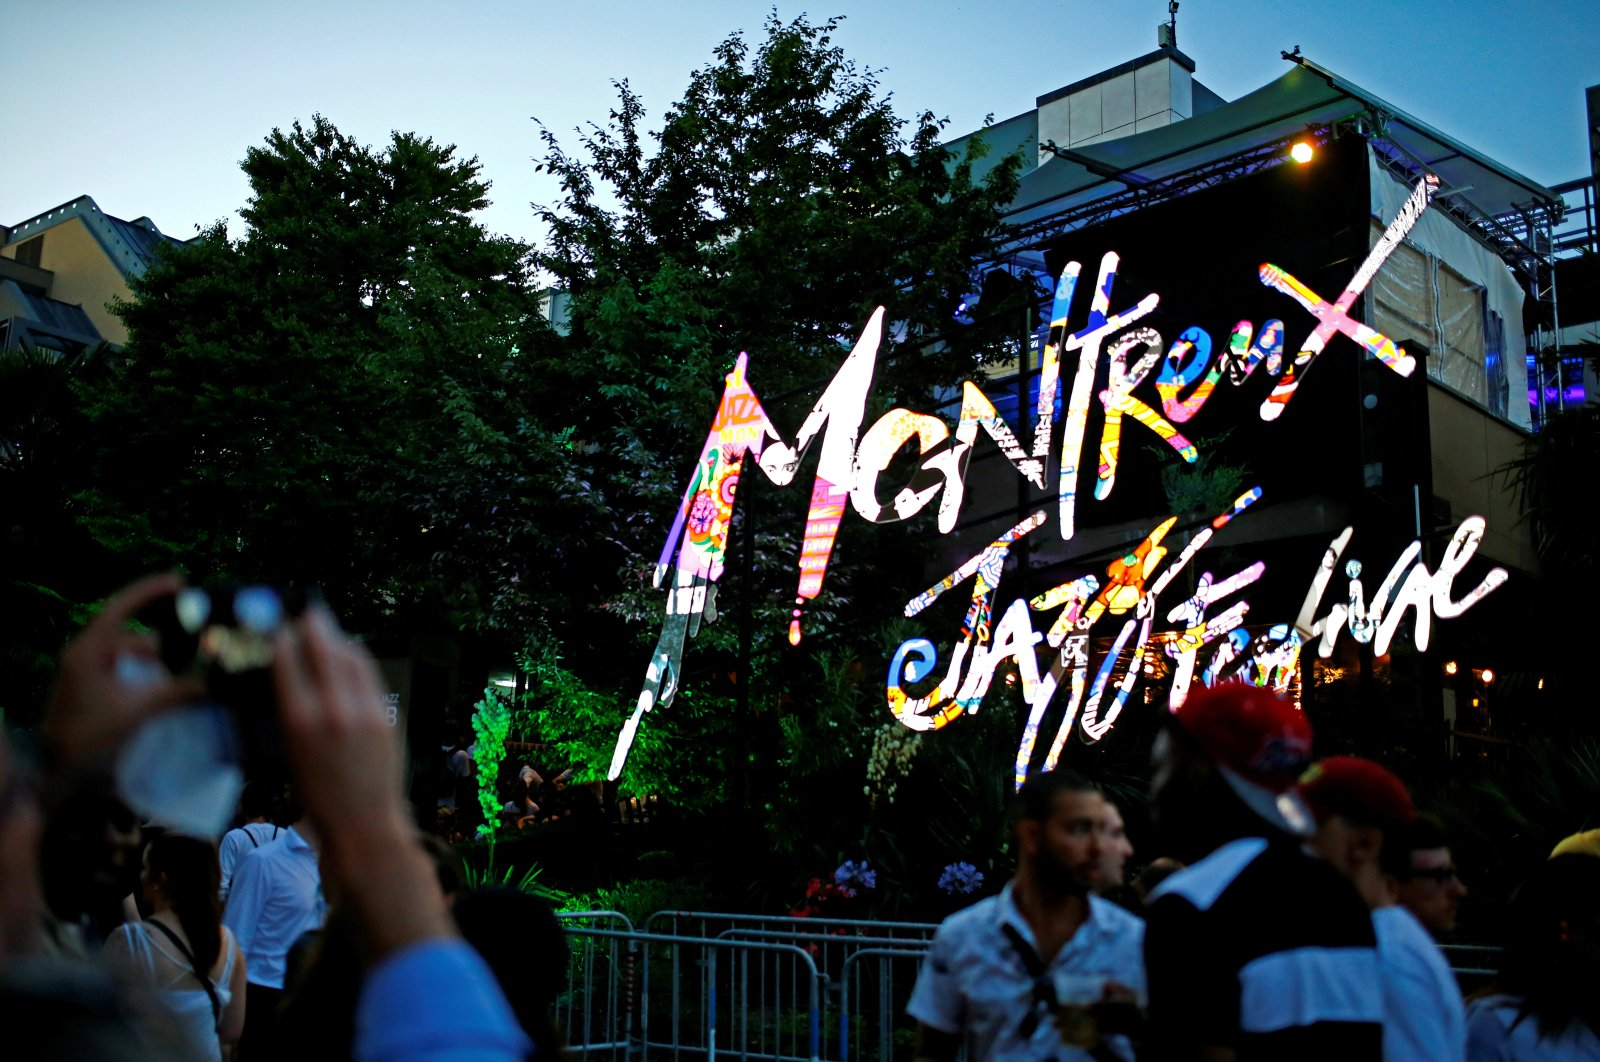 The logo of Montreux Jazz Festival is seen outside the Auditorium Stravinski during the 51st Montreux Jazz Festival in Montreux, Switzerland, July 5, 2017. (REUTERS Photo)